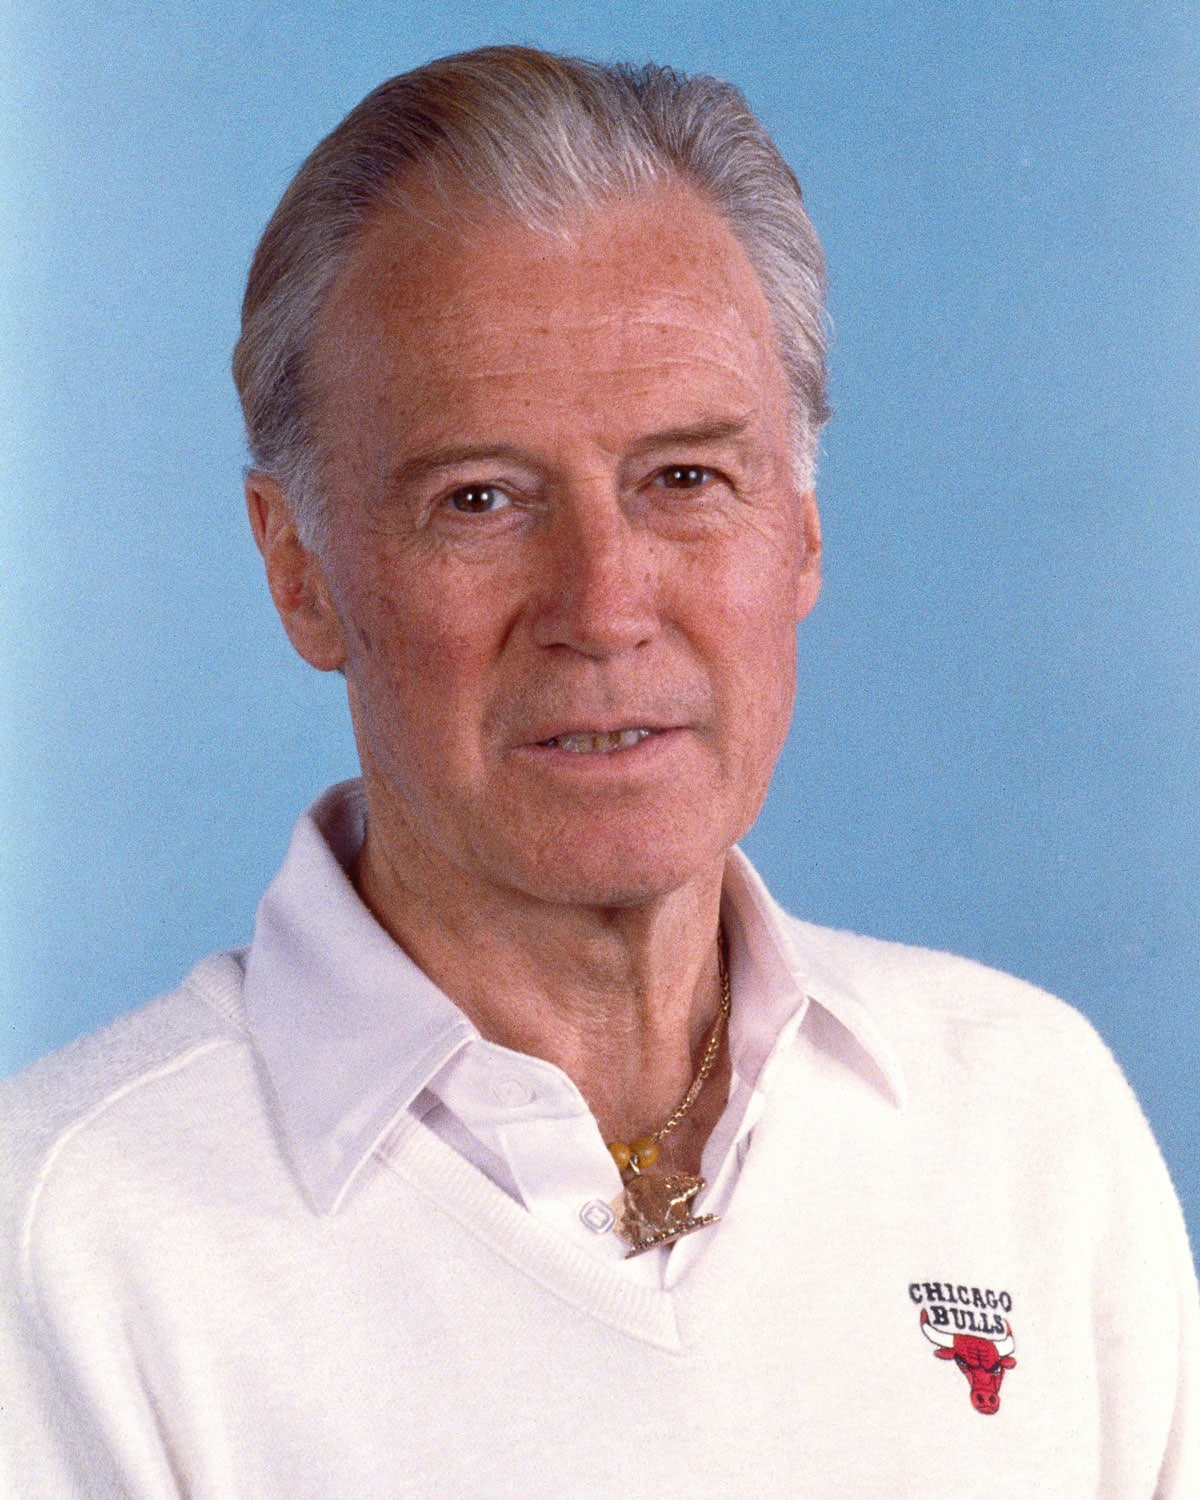 Johnny Bach, assistant coach of the Chicago Bulls poses for a portrait during the 1991 season in Chicago, Illinois.